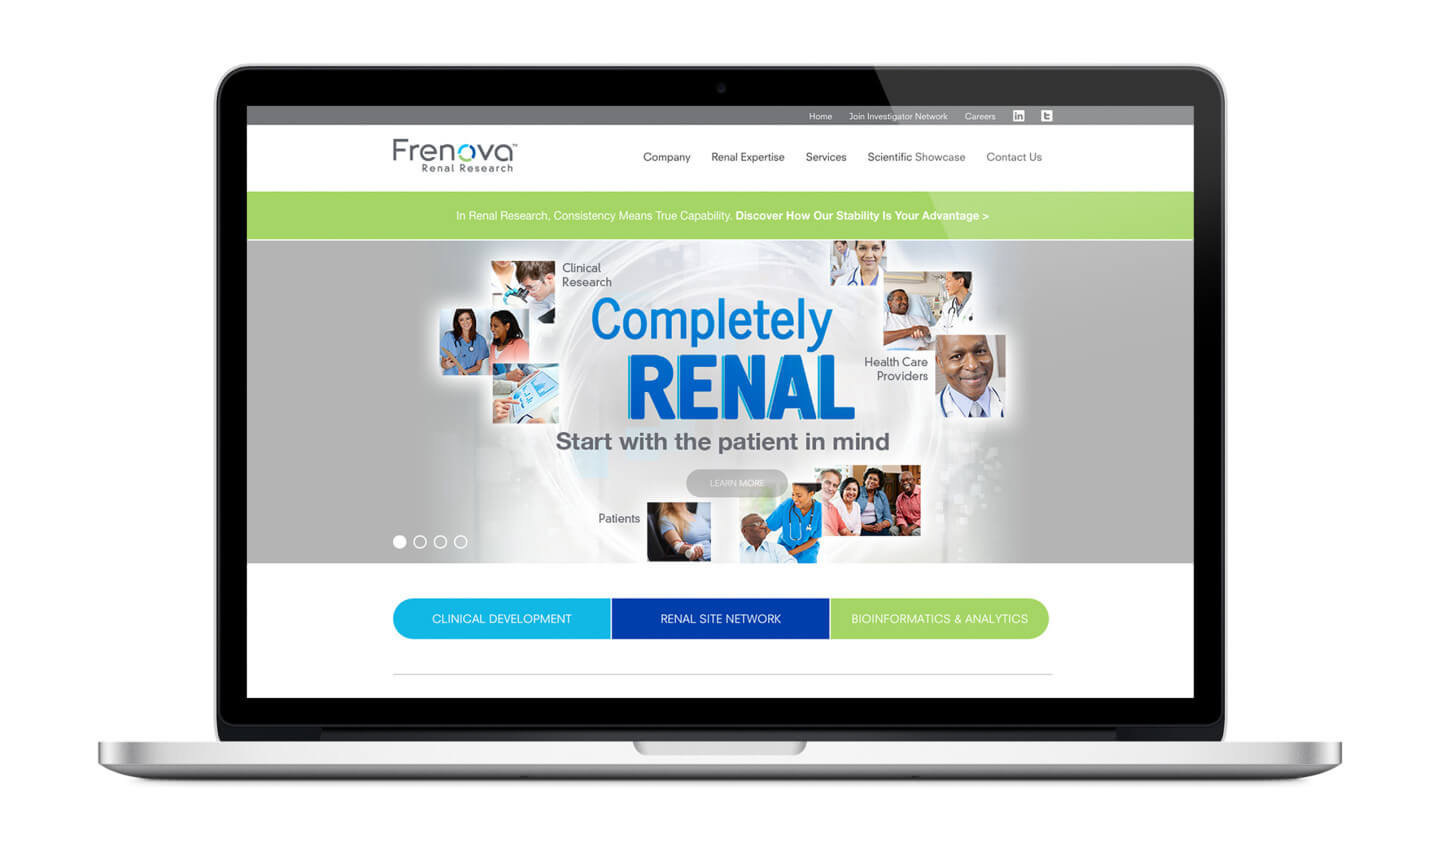 Frenova website